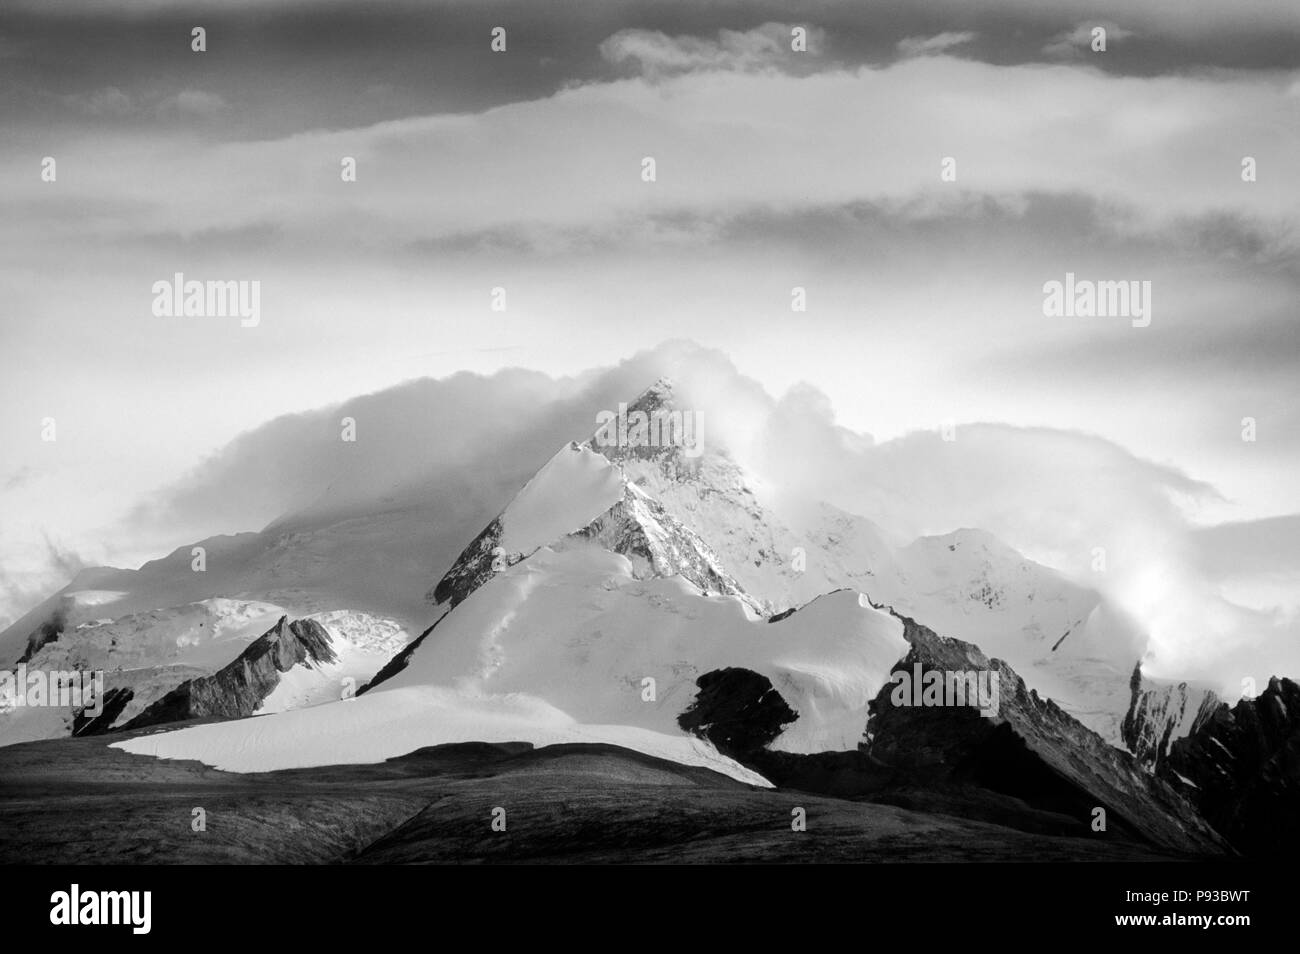 HIMALAYAN PEAKS  - Southern route to MOUNT KAILASH, TIBET - Stock Image